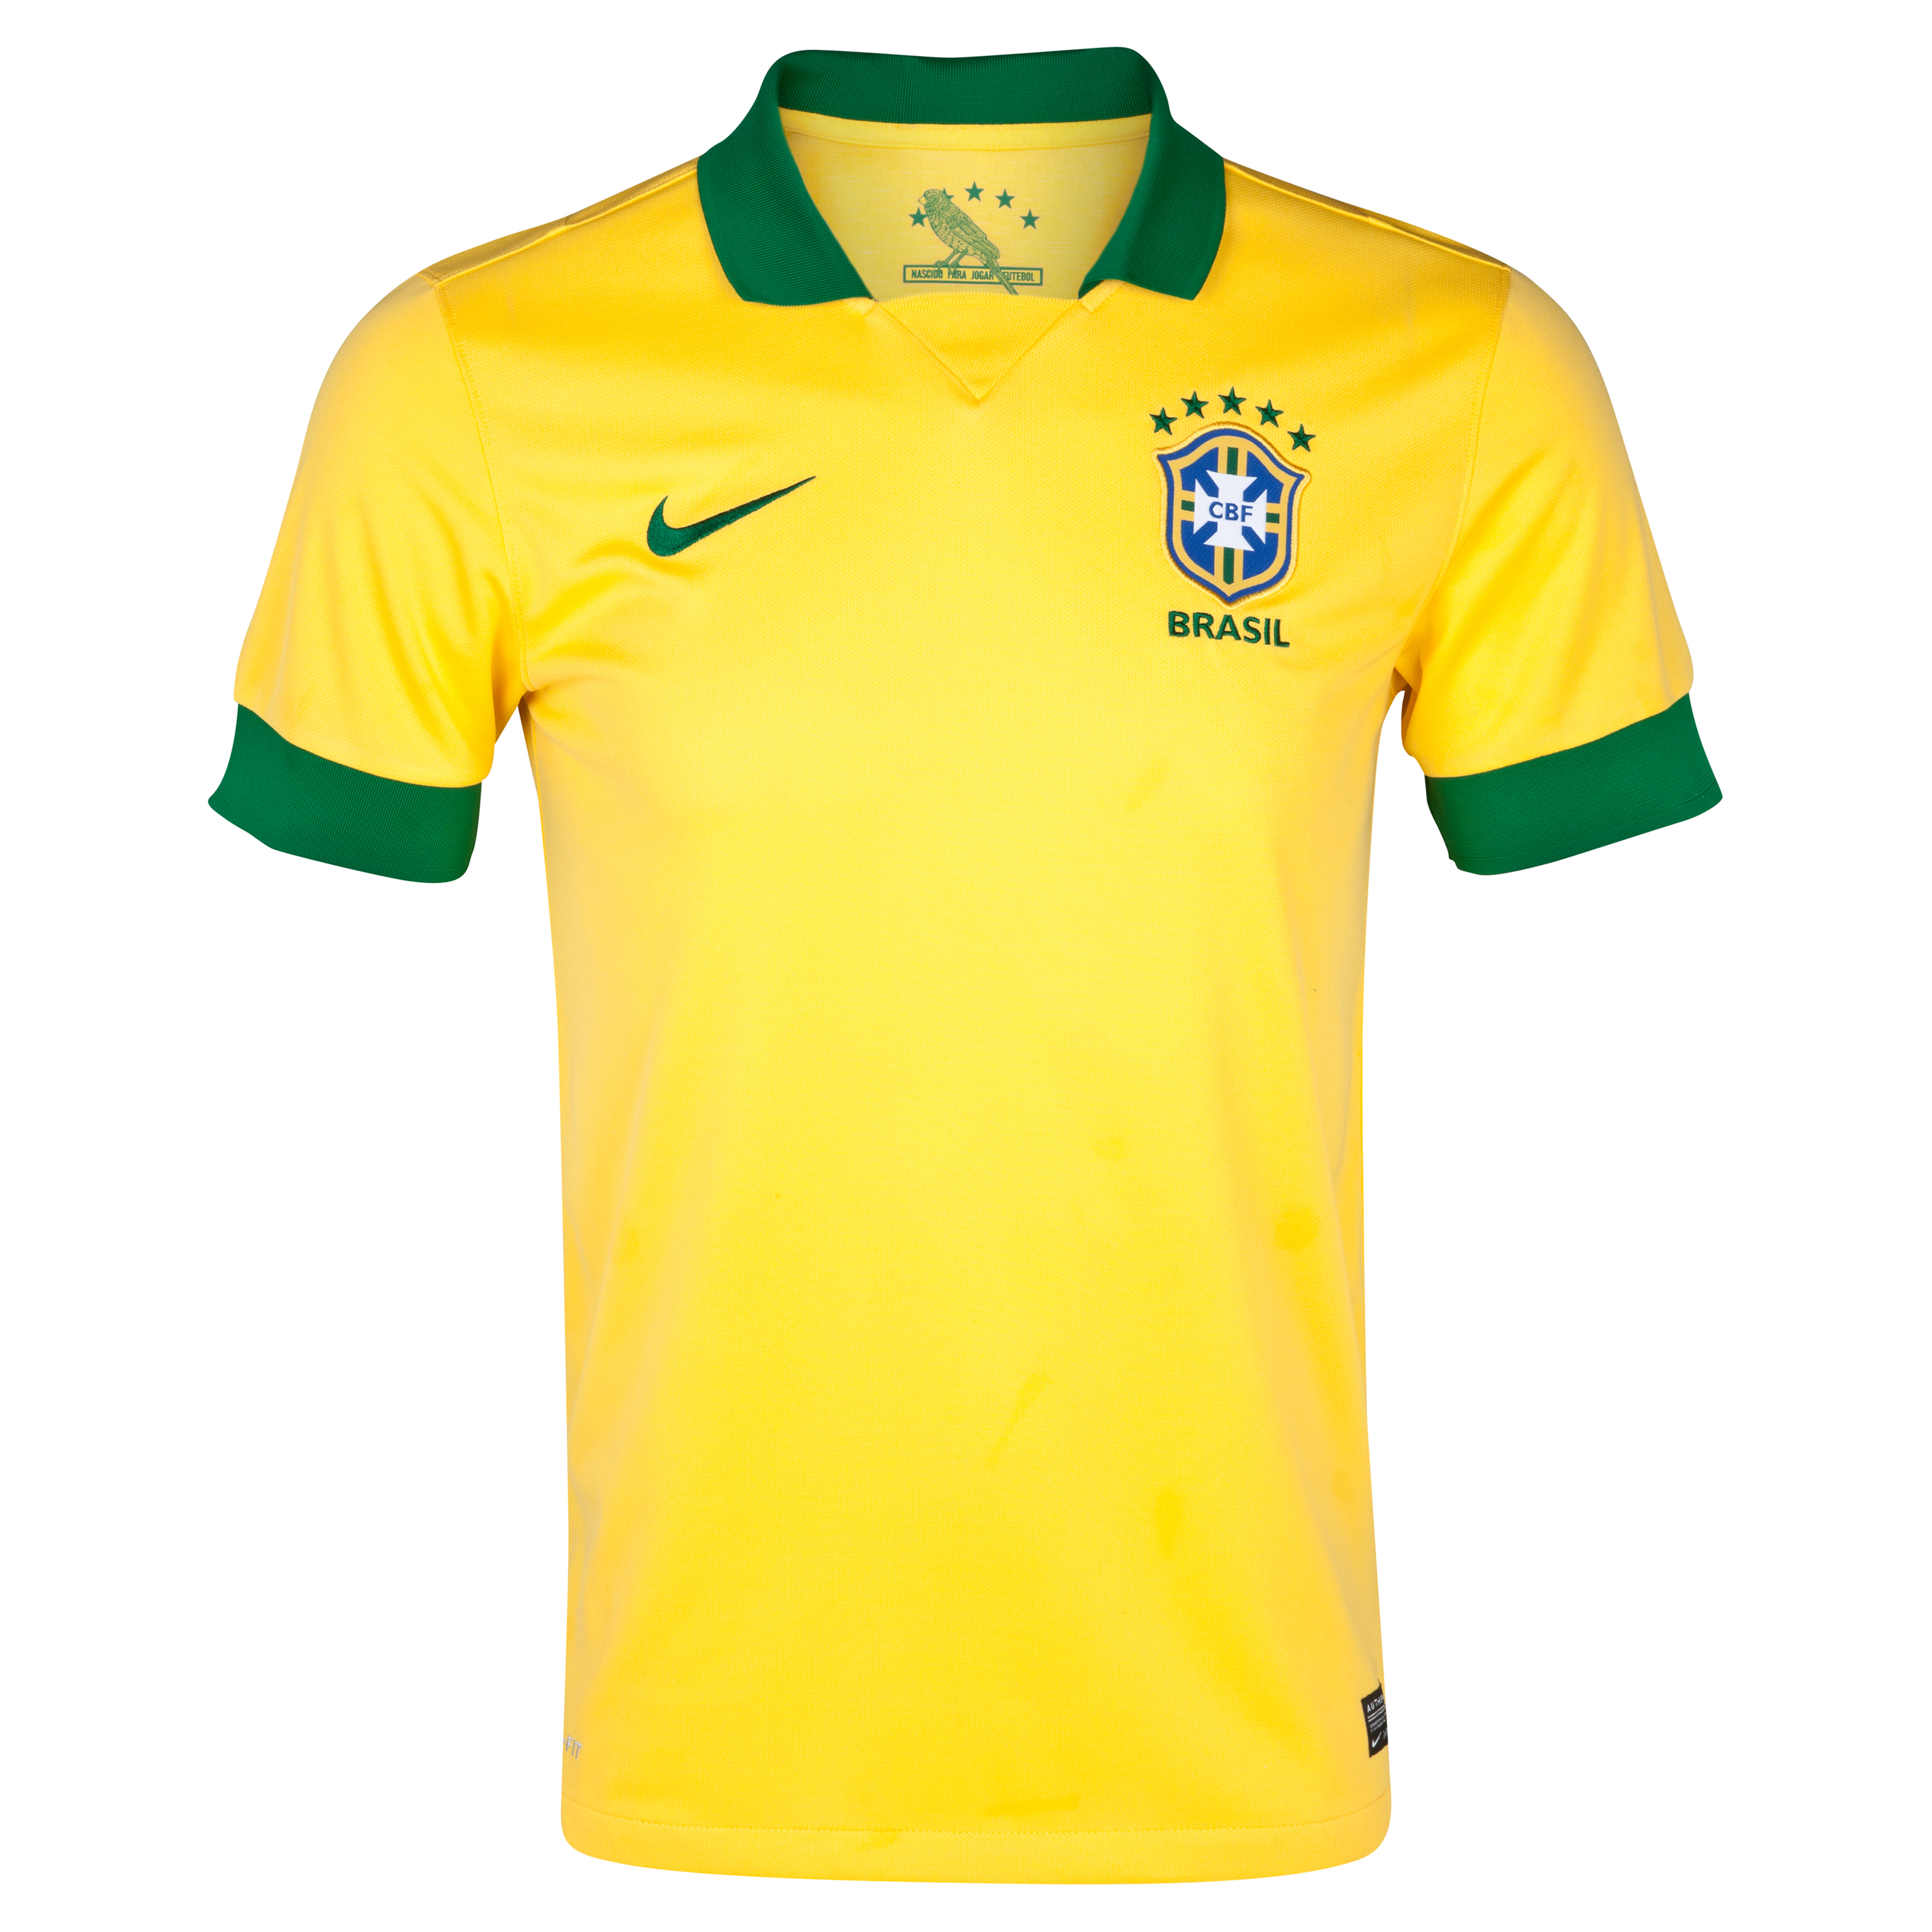 Brazil Home Shirt 2013/14 - Youths